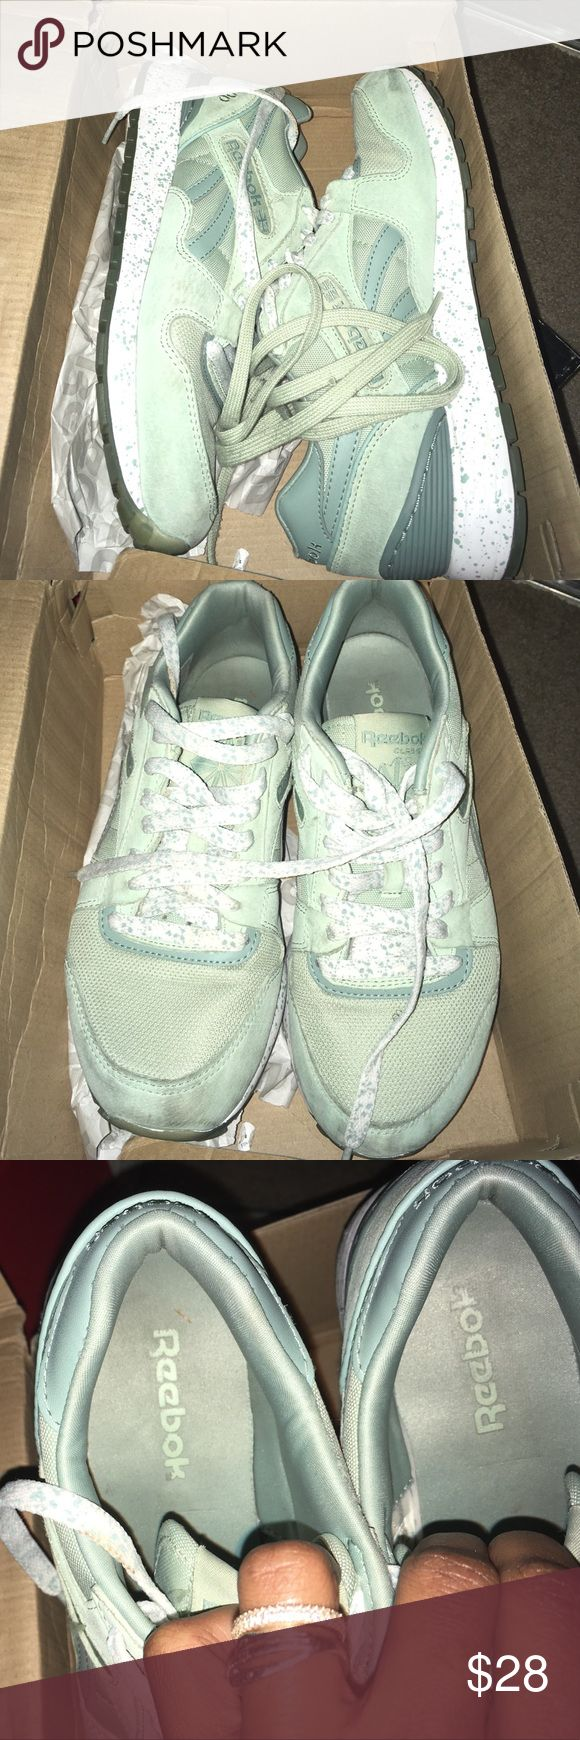 Rebook Suede Classics Green Reebok Classics! Interchangeable Shoes Strings. A Lot Of Wear, They Use To Be My Favorite Sneakers. A Couple Of Spots But Nothing A Good Washing Can't Fix! ❤ Reebok Shoes Sneakers